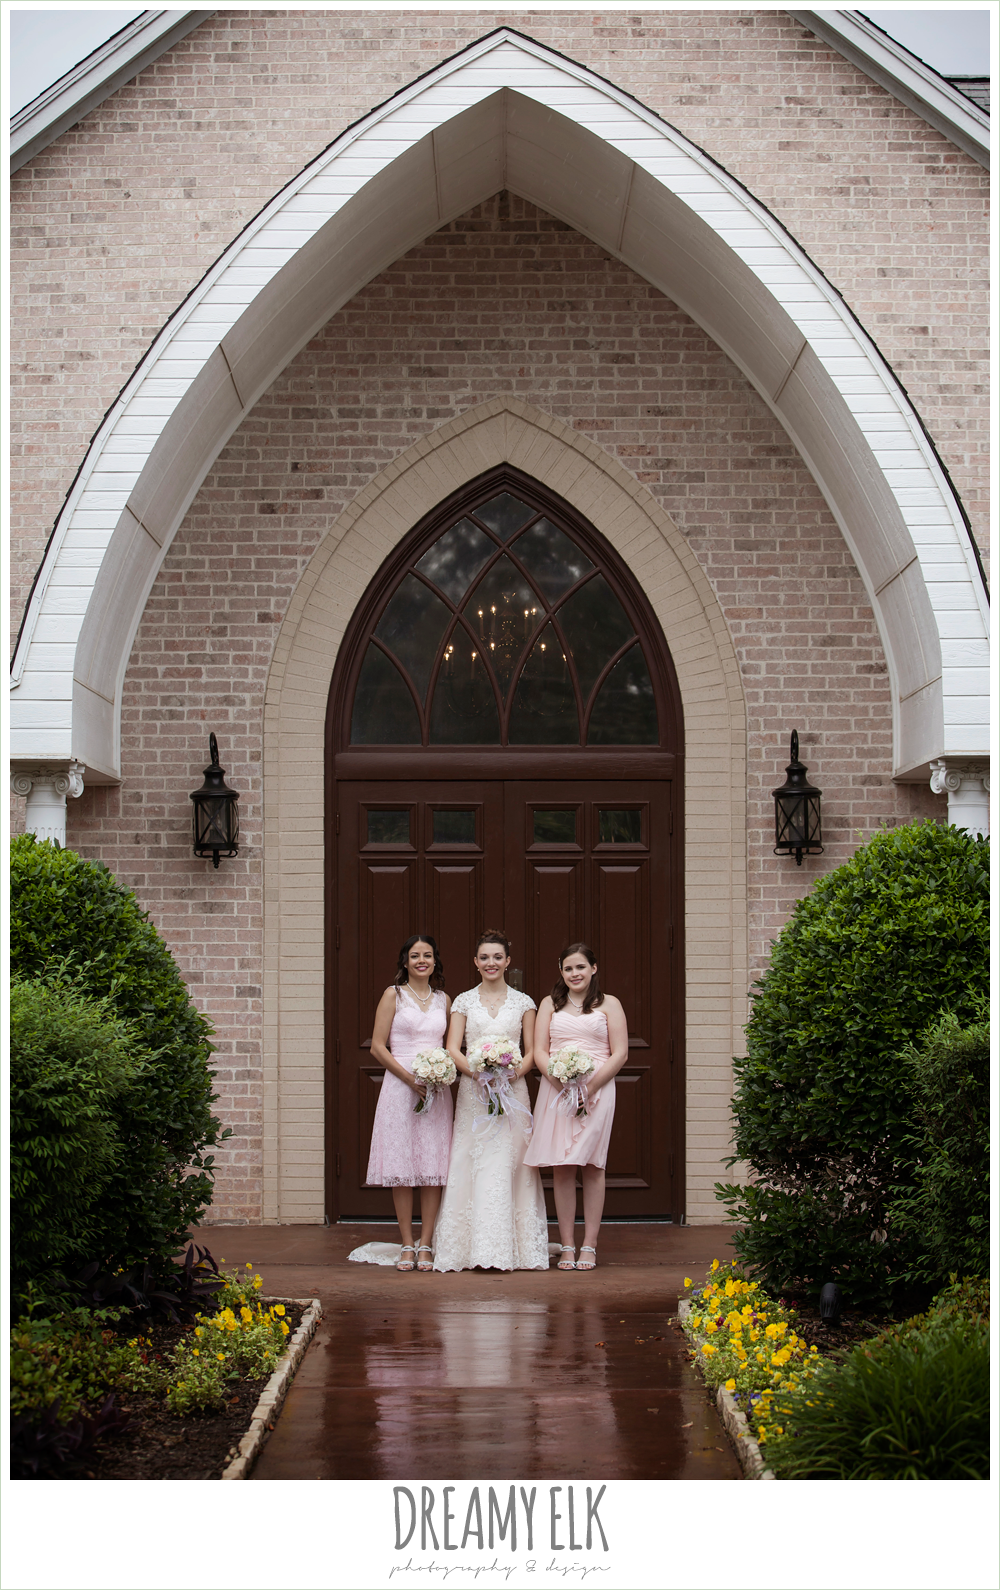 blush pink wedding dress, pink bridesmaids dresses, northeast wedding chapel, rainy wedding day photo {dreamy elk photography and design}